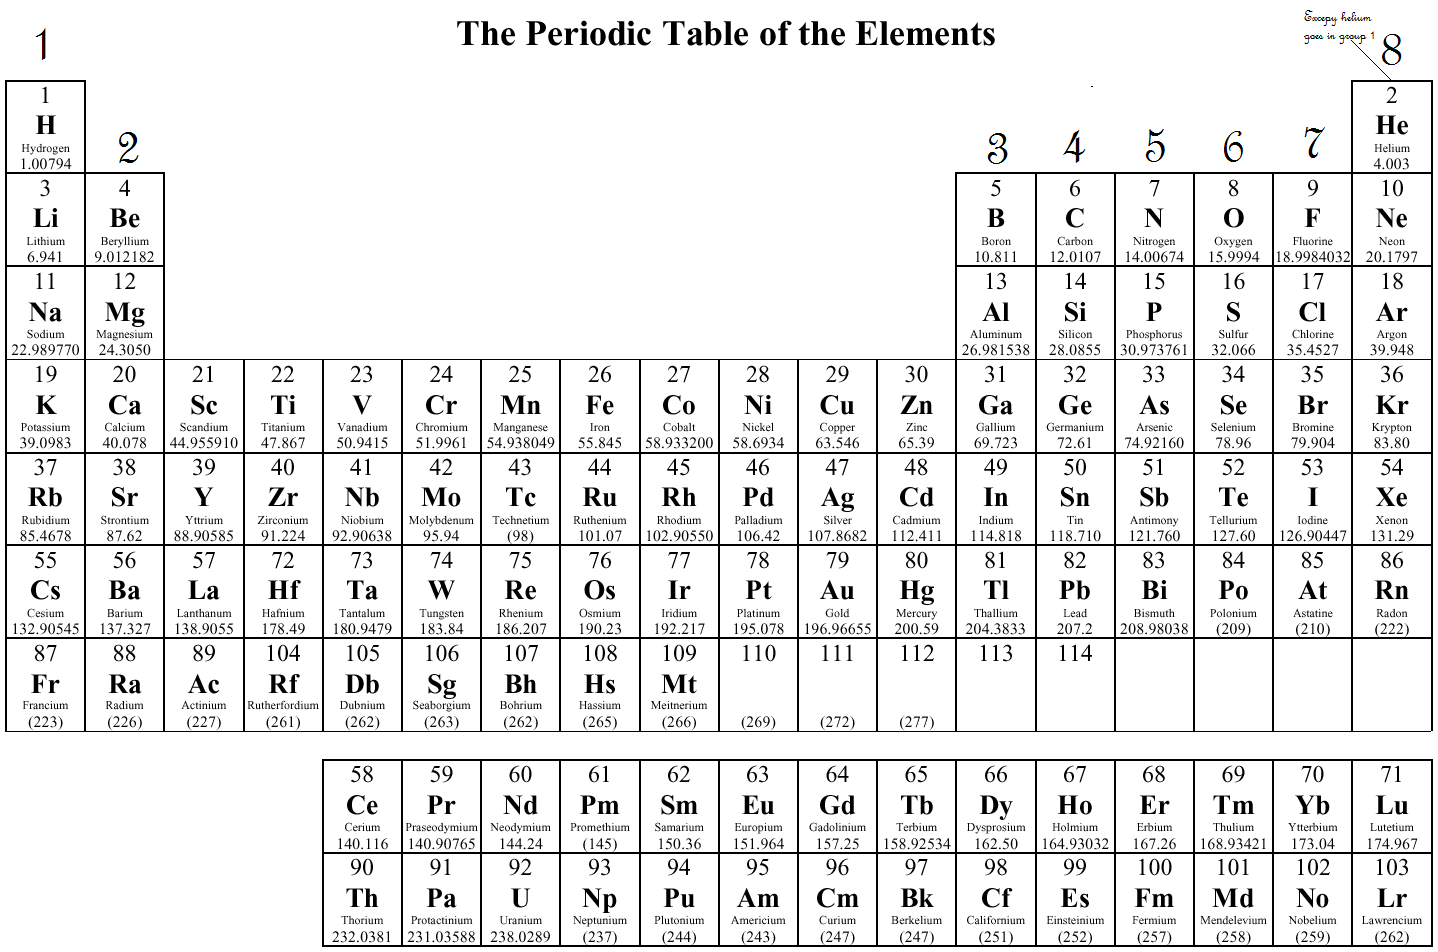 Enriched Chemistry Compound Project Valence Electrons And